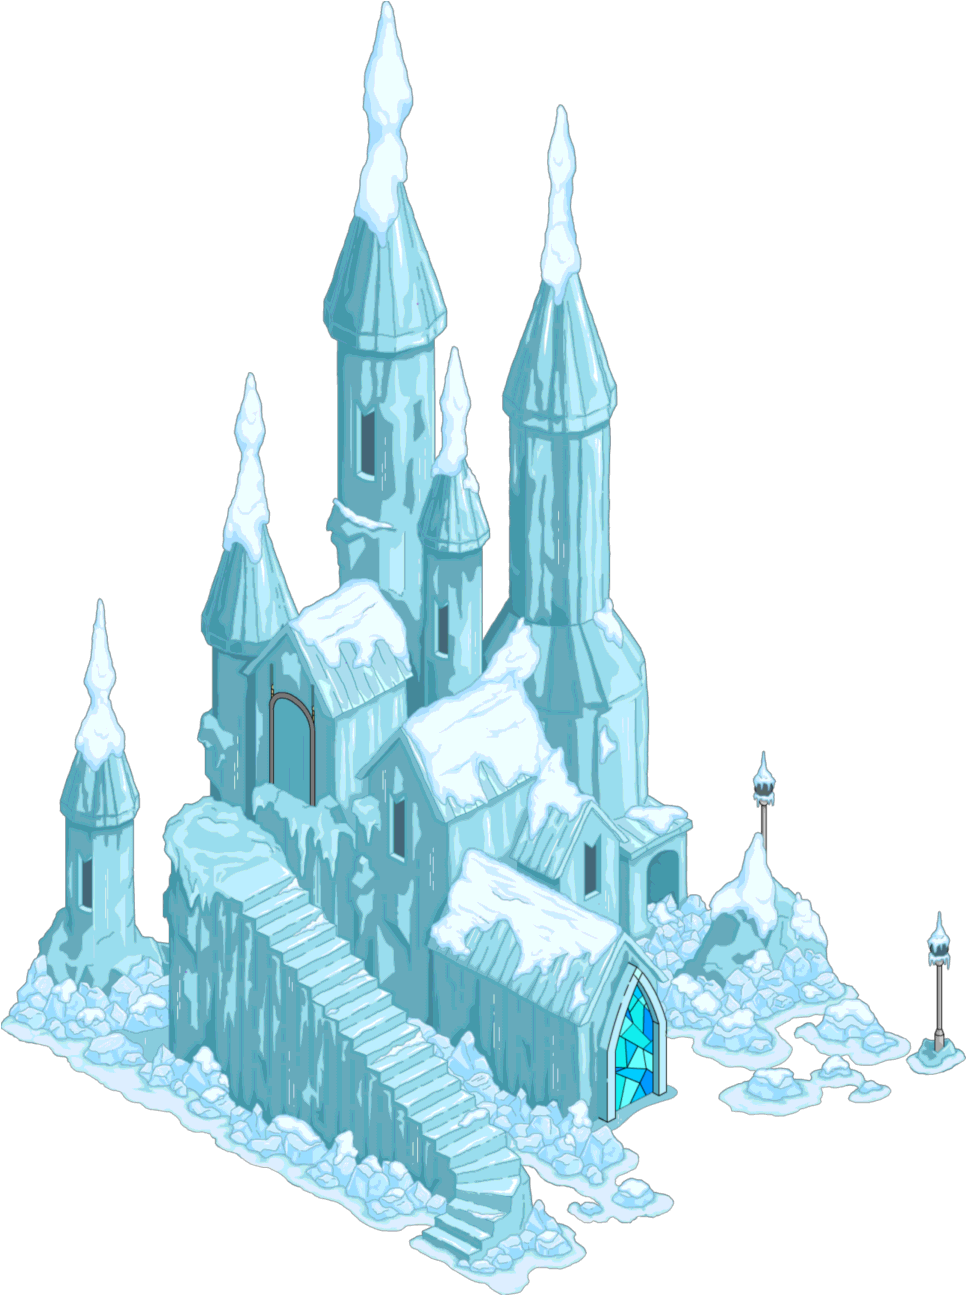 flag castle huge. Palace clipart cute